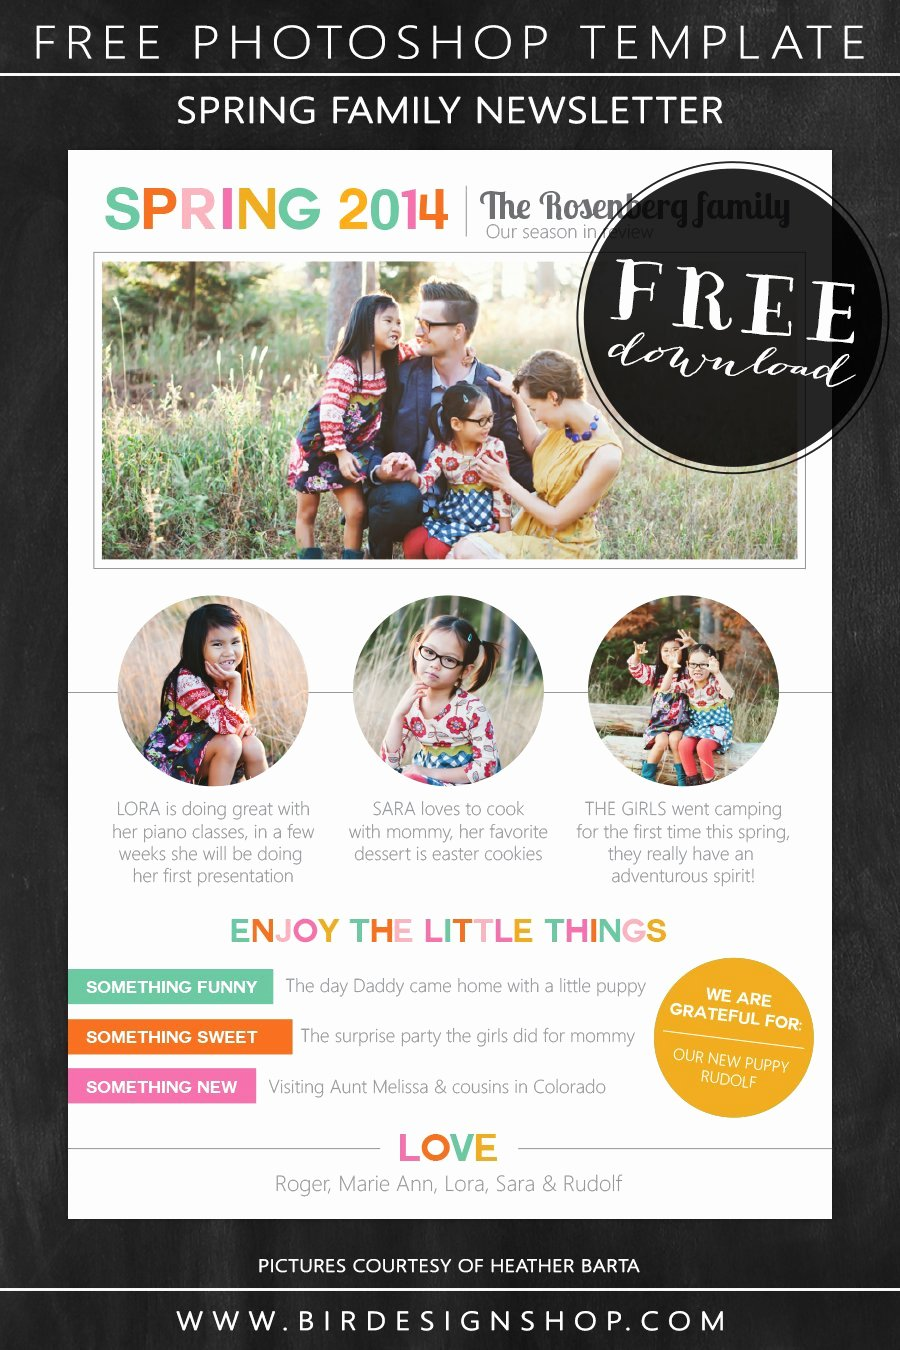 Spring Family Newsletter Free Photoshop Template – Birdesign